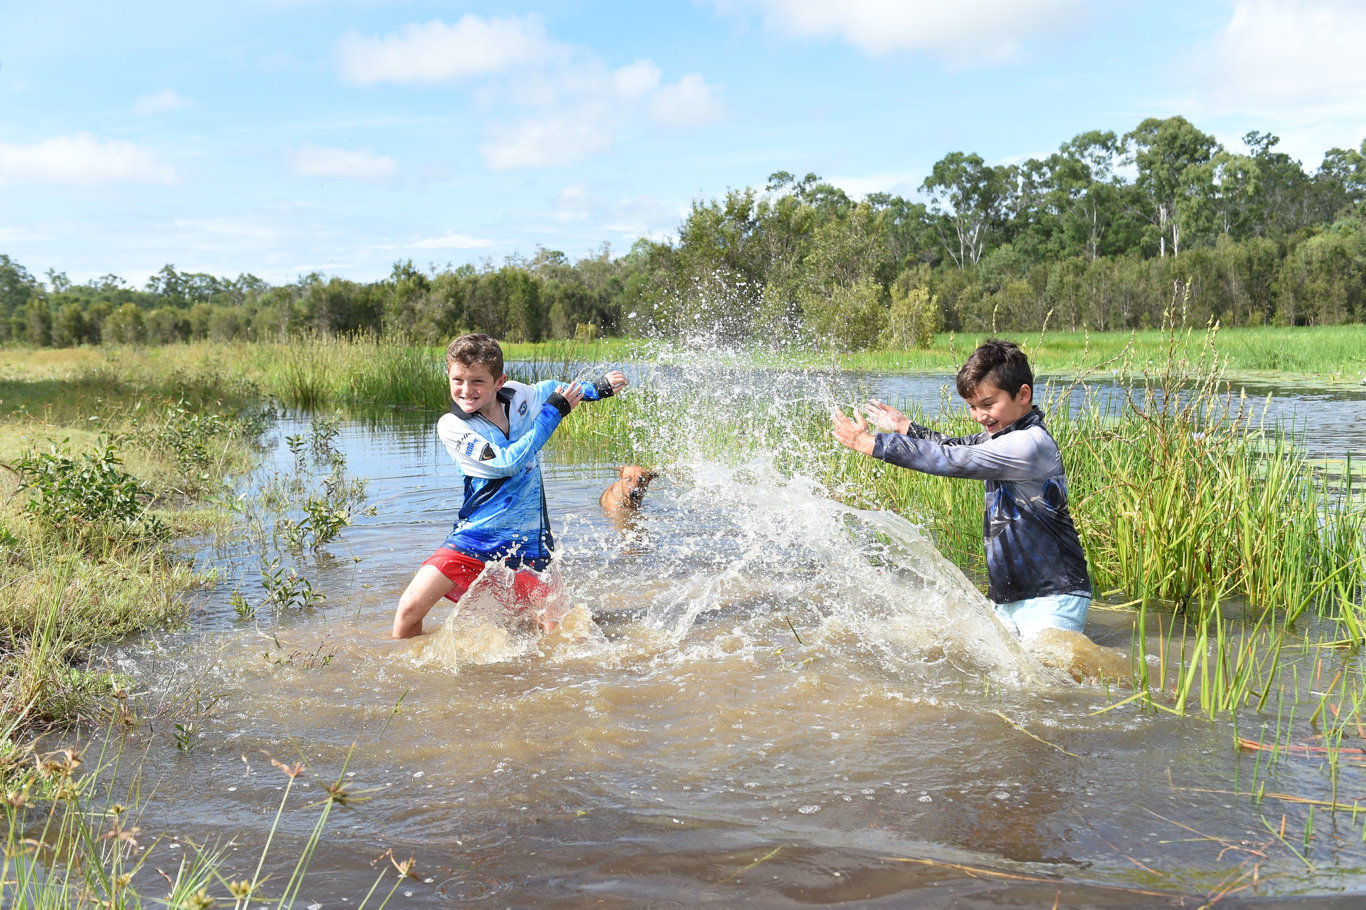 Lachlan,8, and Hunter,10, McLean having fun in one of the lagoons at Susan River Homestead where 12 months ago they were rescueing fish from muddy puddles.